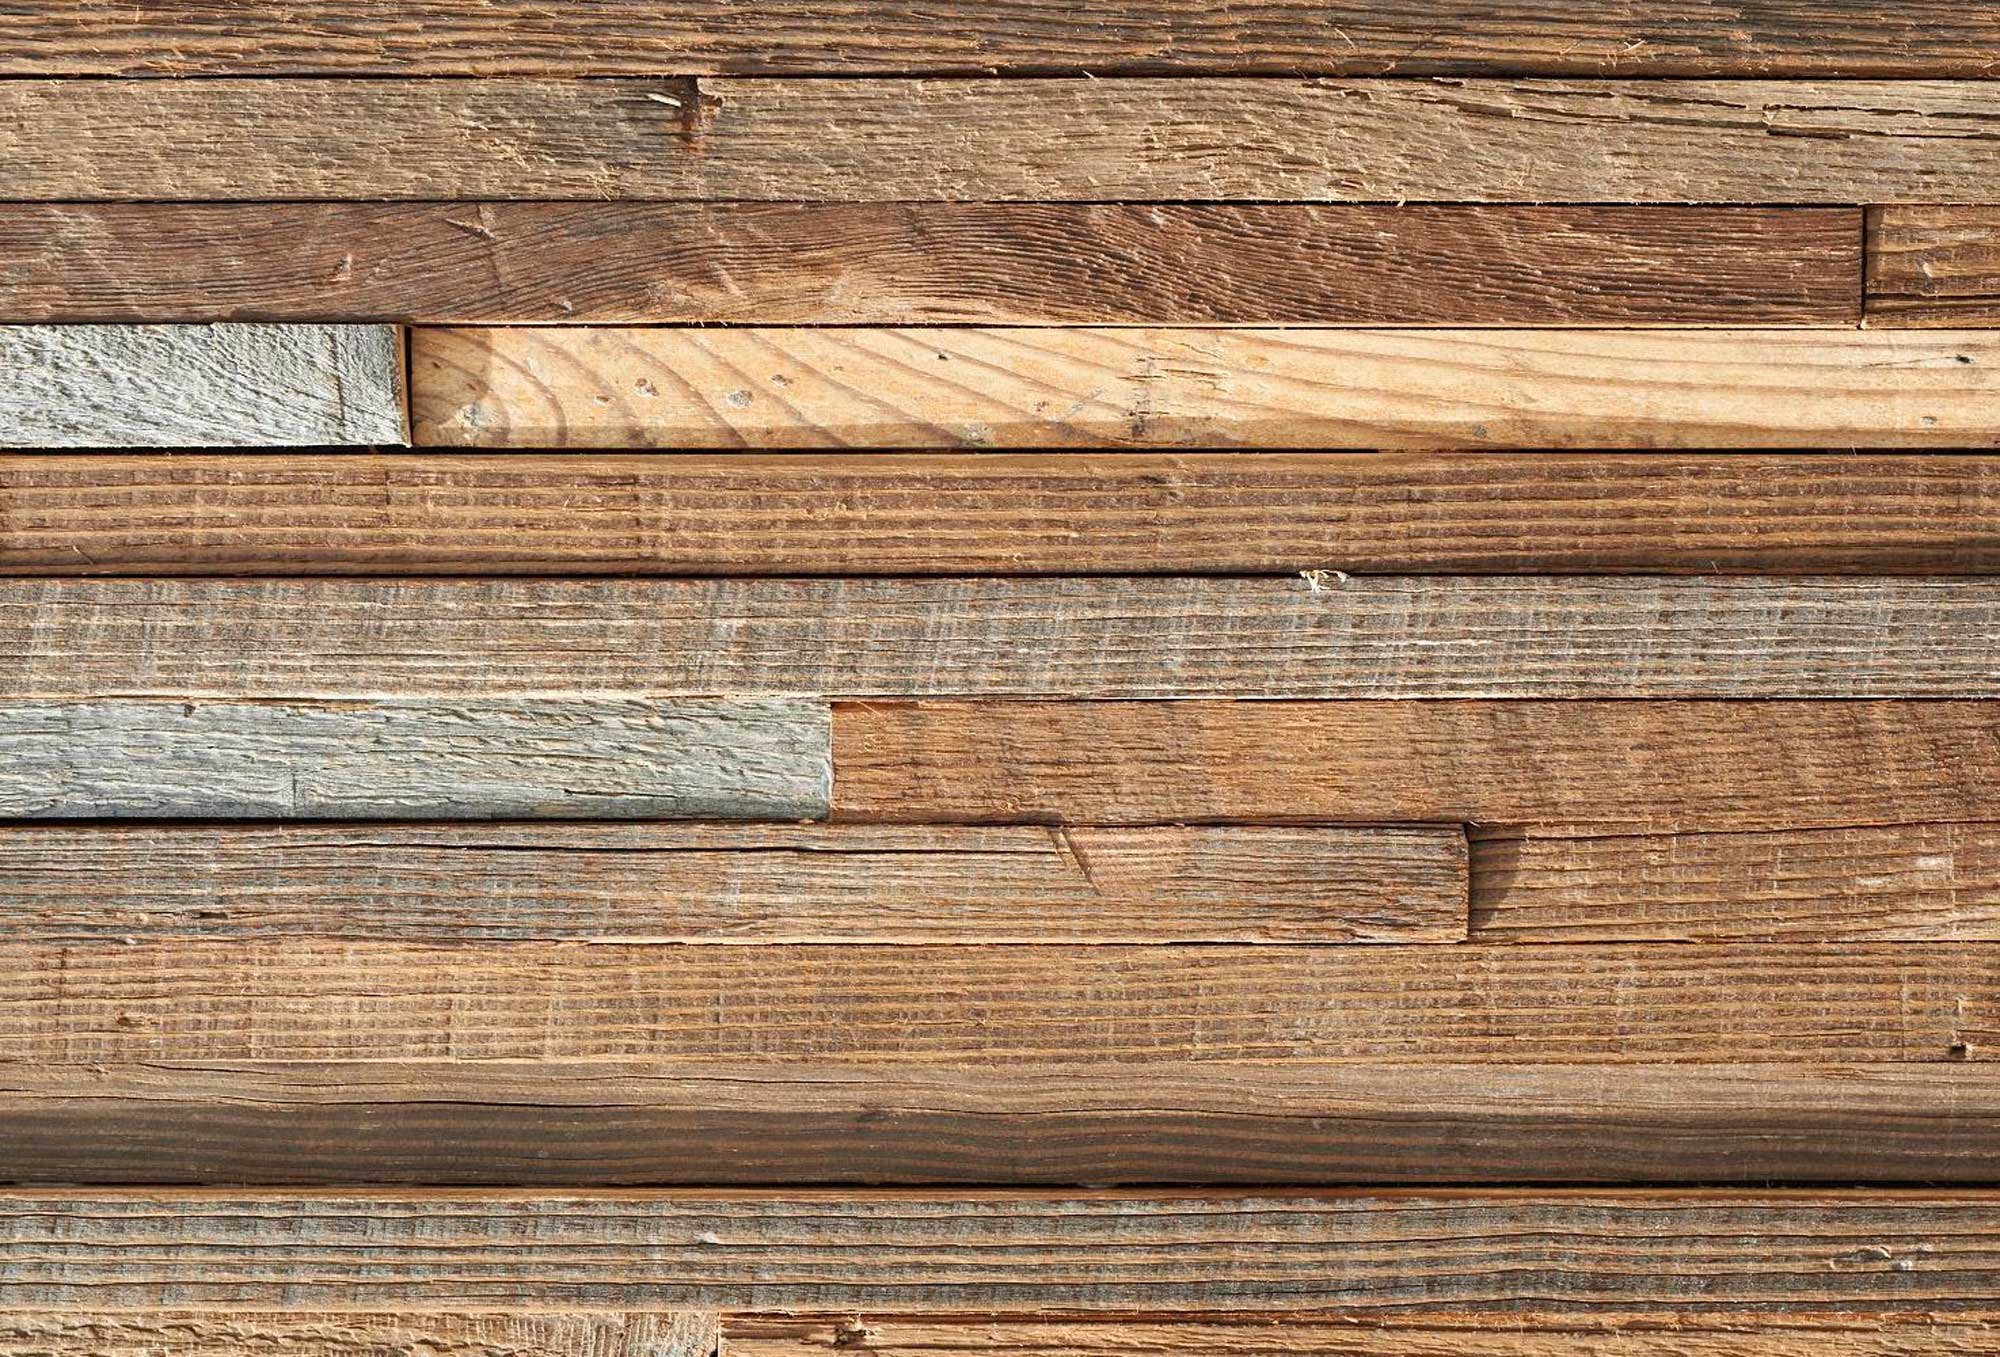 wandpaneele-holz-pechkiefer-recycelt-natural-high